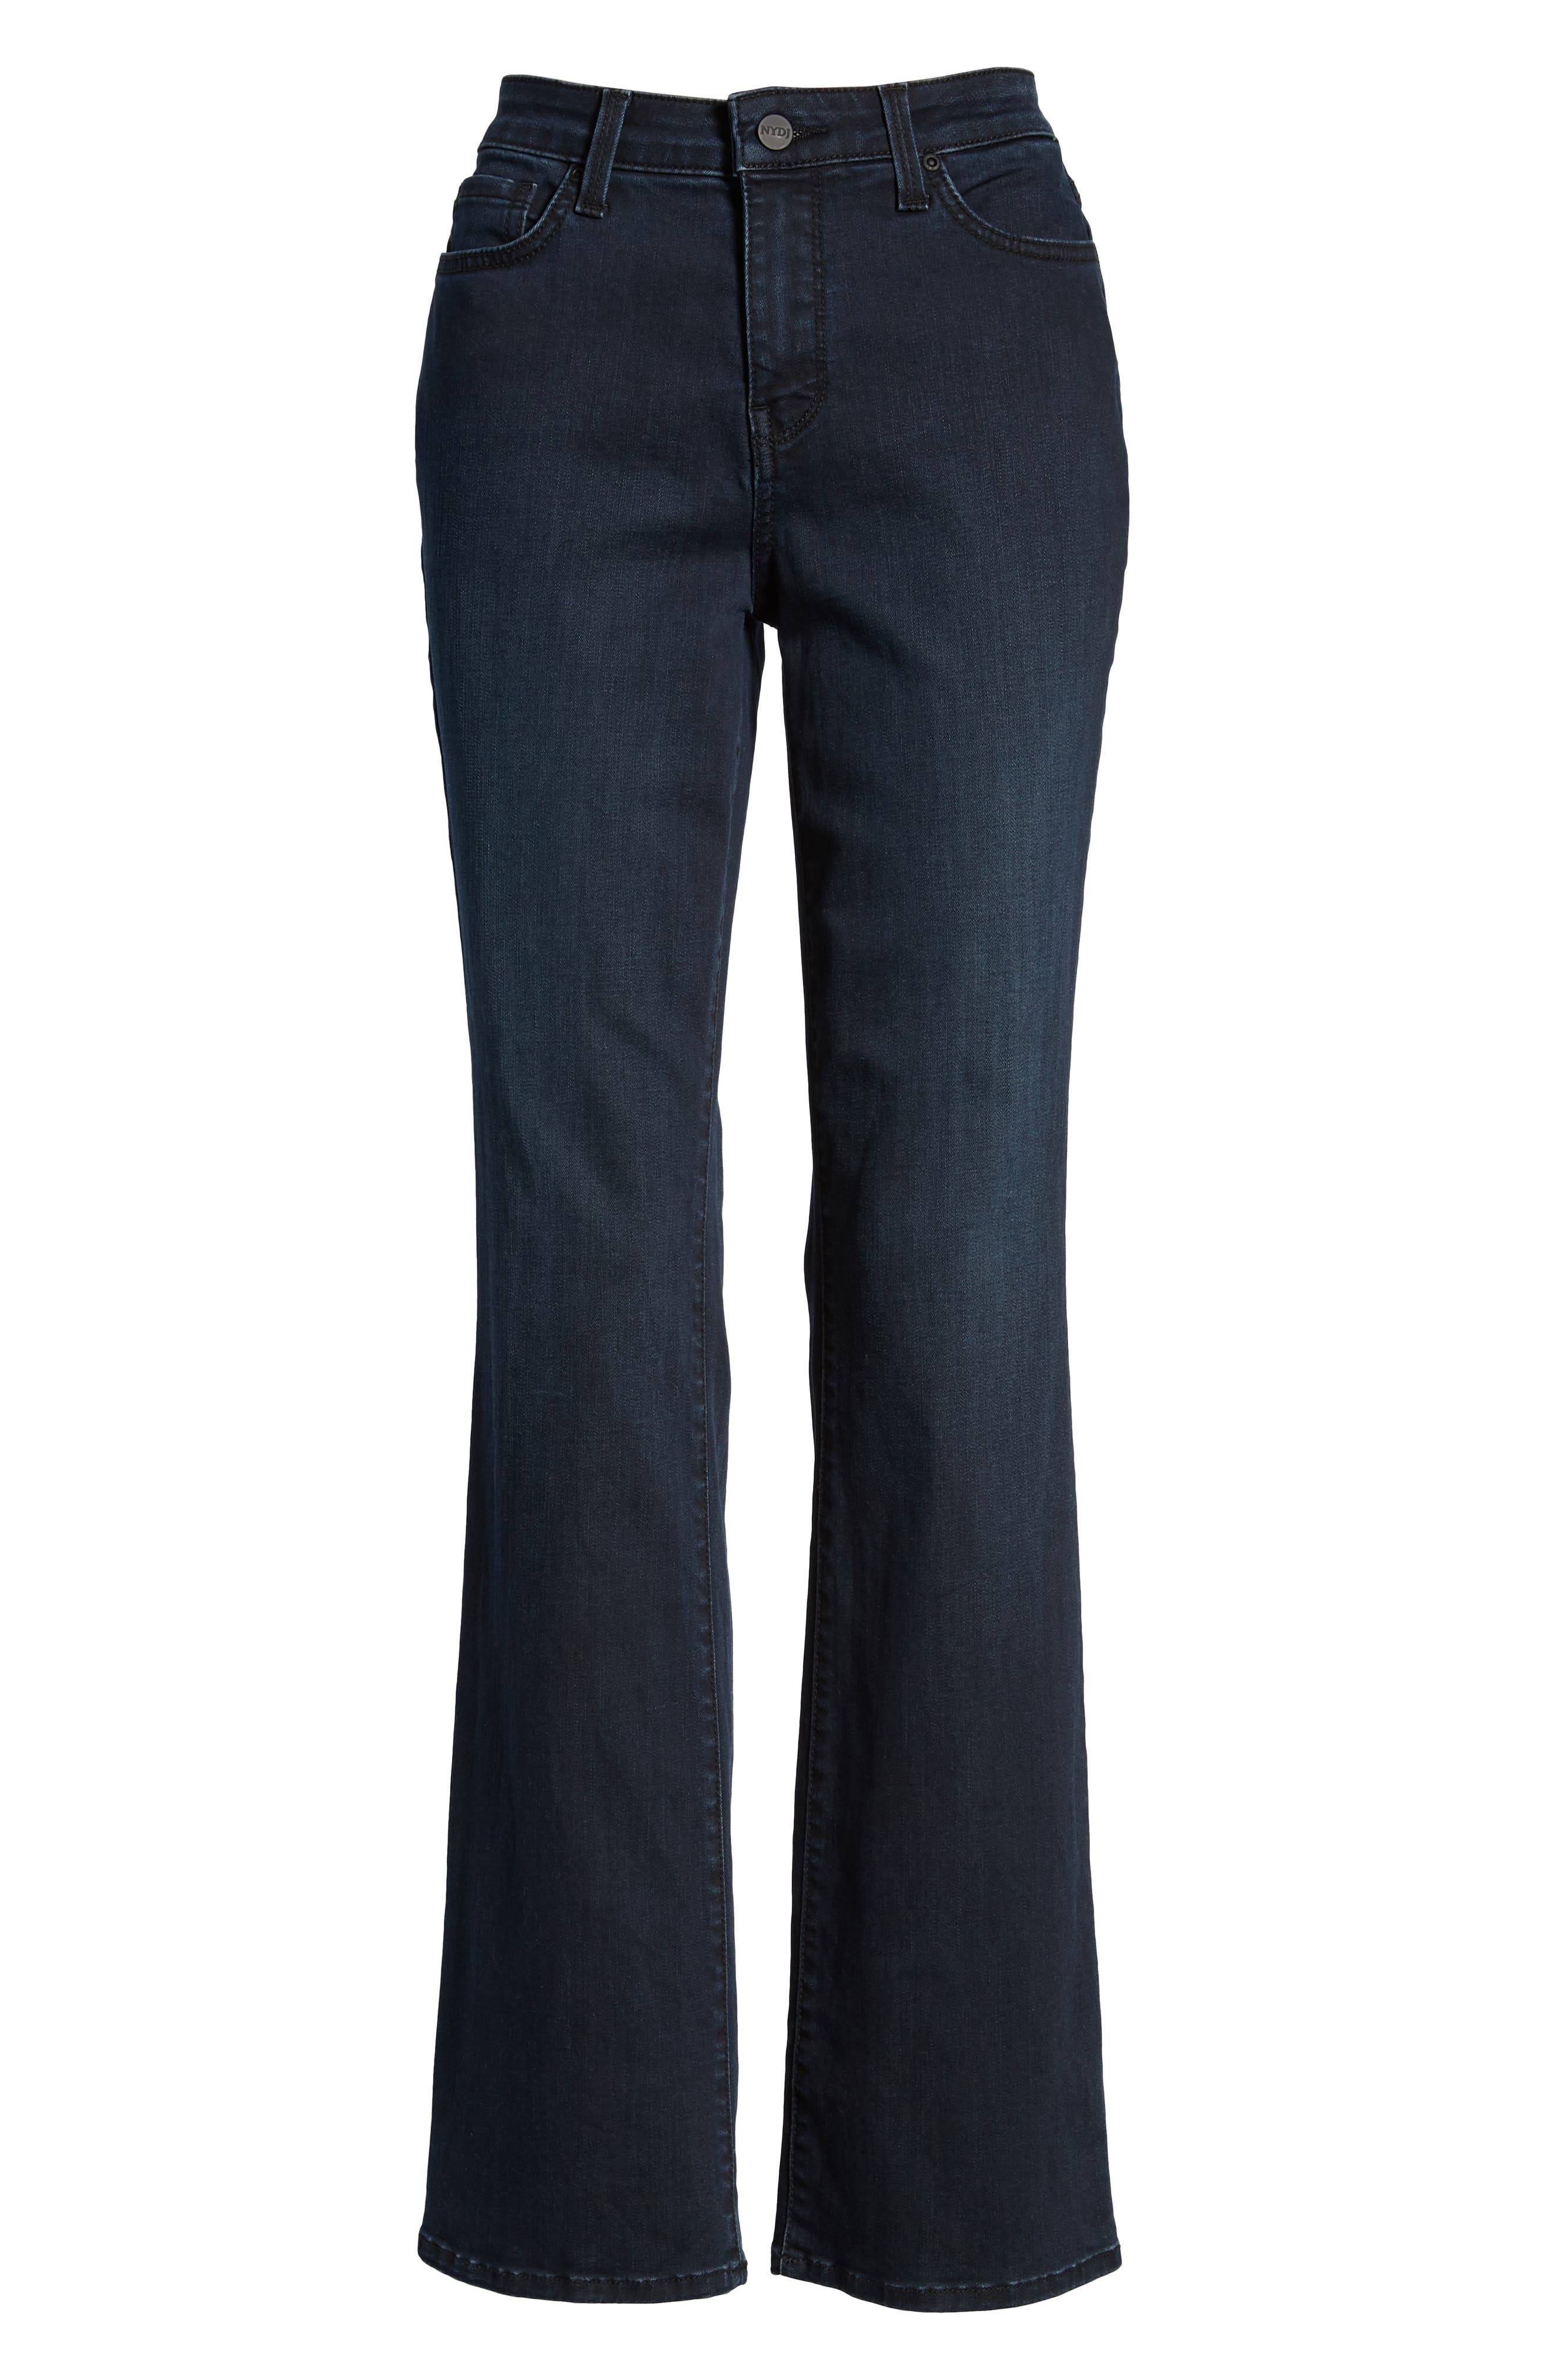 Barbara Bootcut Stretch Skinny Jeans,                             Alternate thumbnail 6, color,                             407